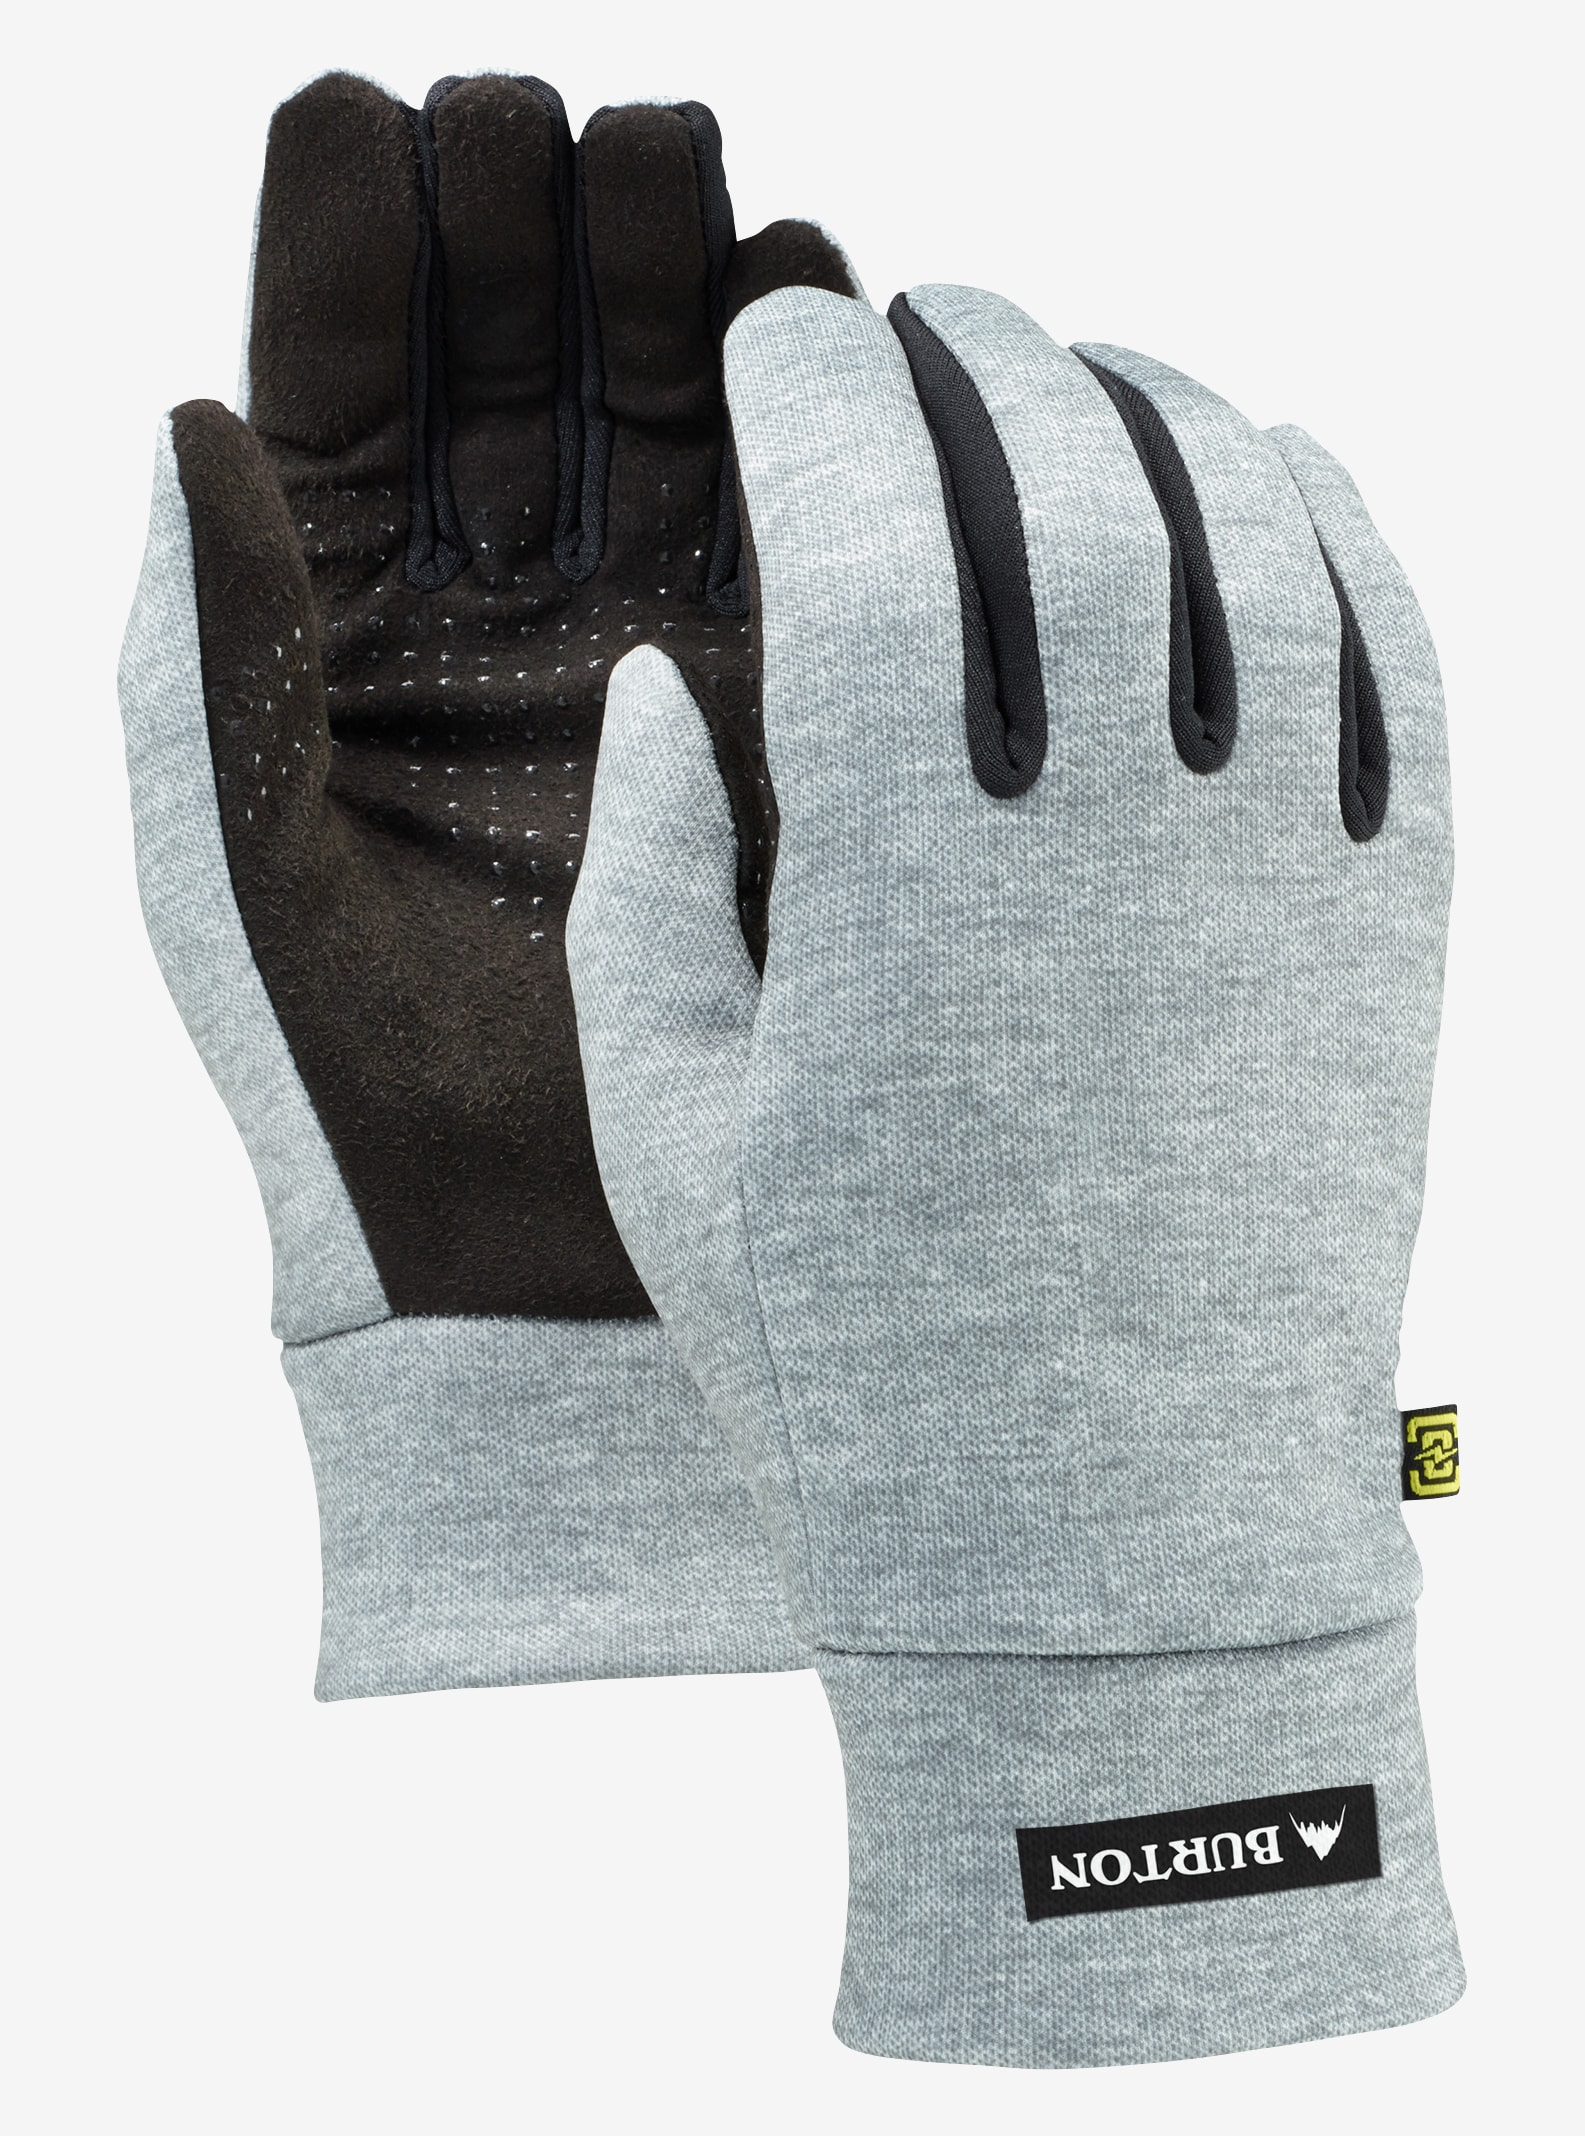 Men's Burton Touch N Go Glove shown in Heathered Gray